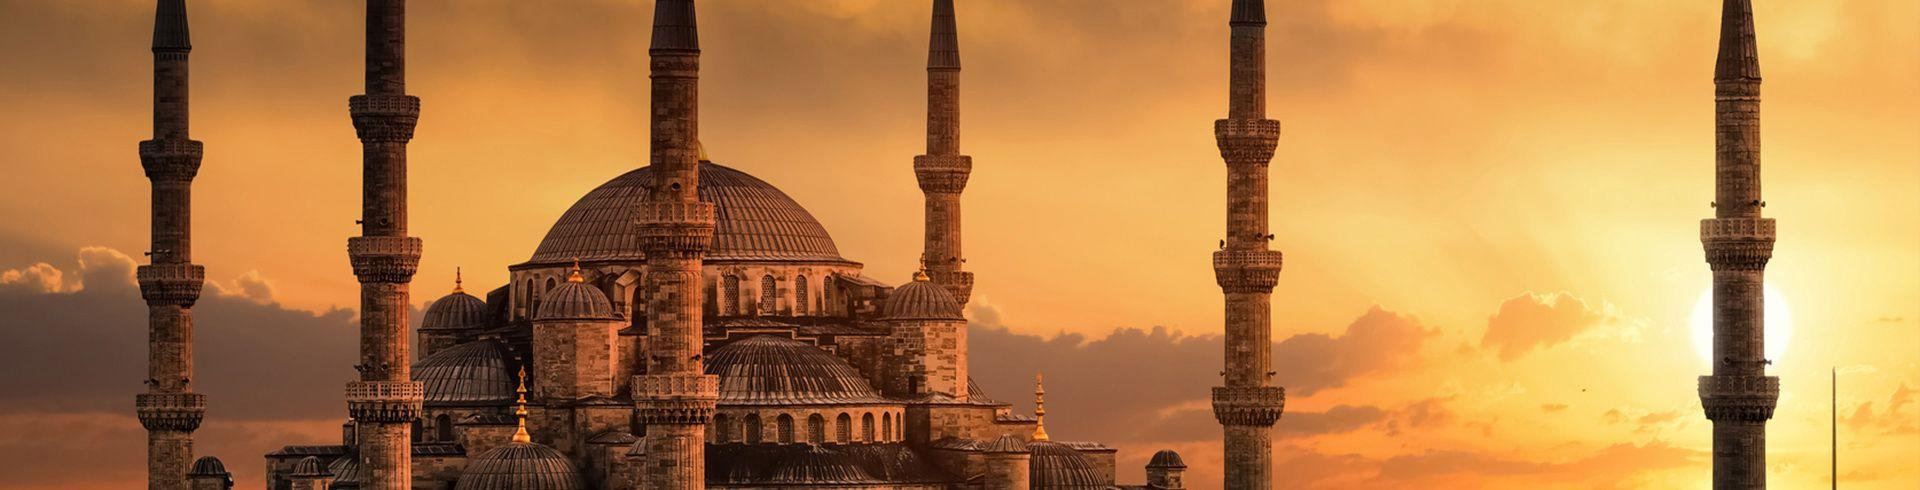 a history of constantinople the gateway city Science math history literature  the ancient city of constantinople has  constantinople was considered strategically important because itwas the gateway to.